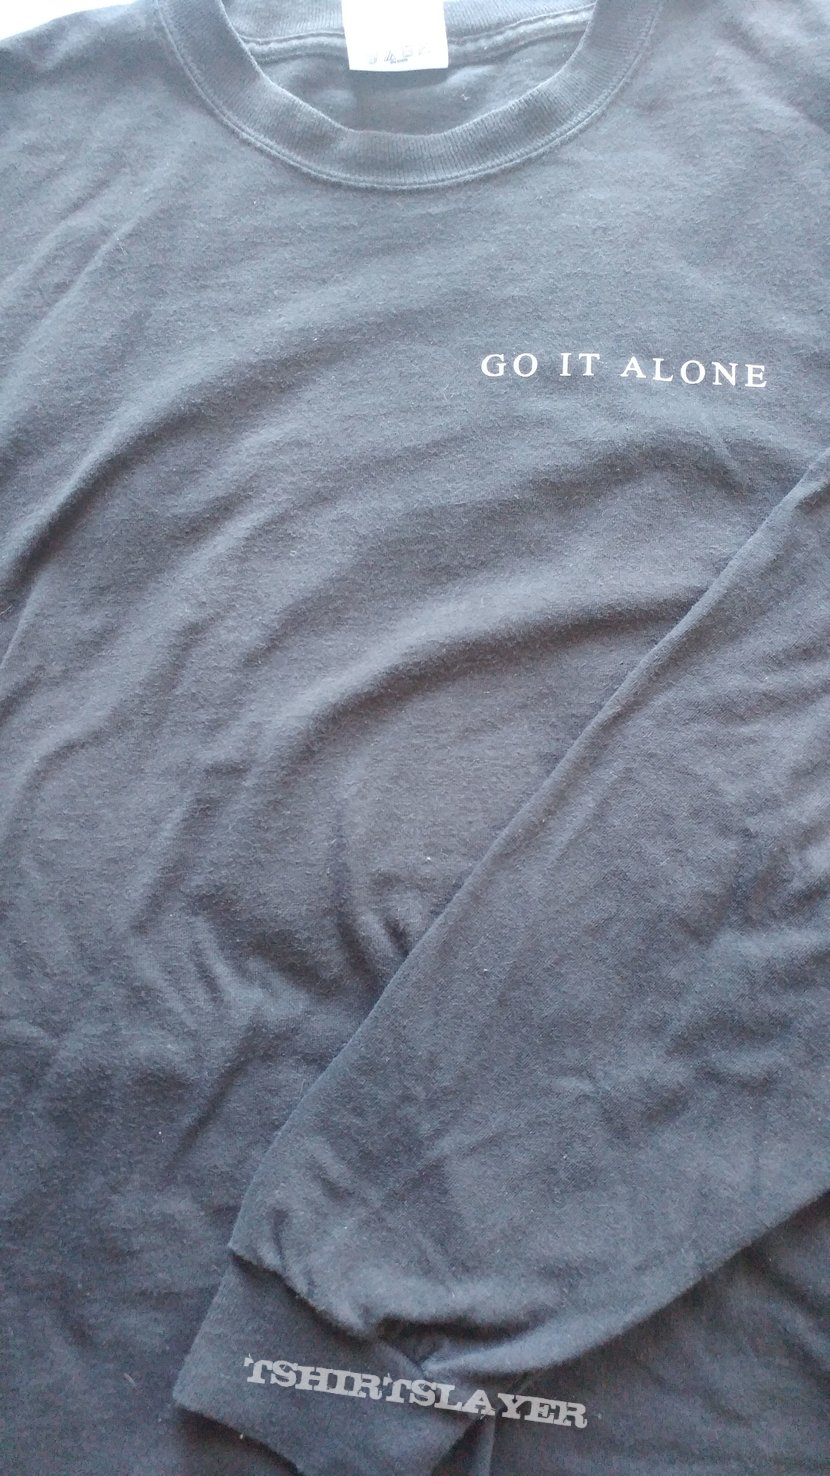 Go It Alone Histories long sleeve